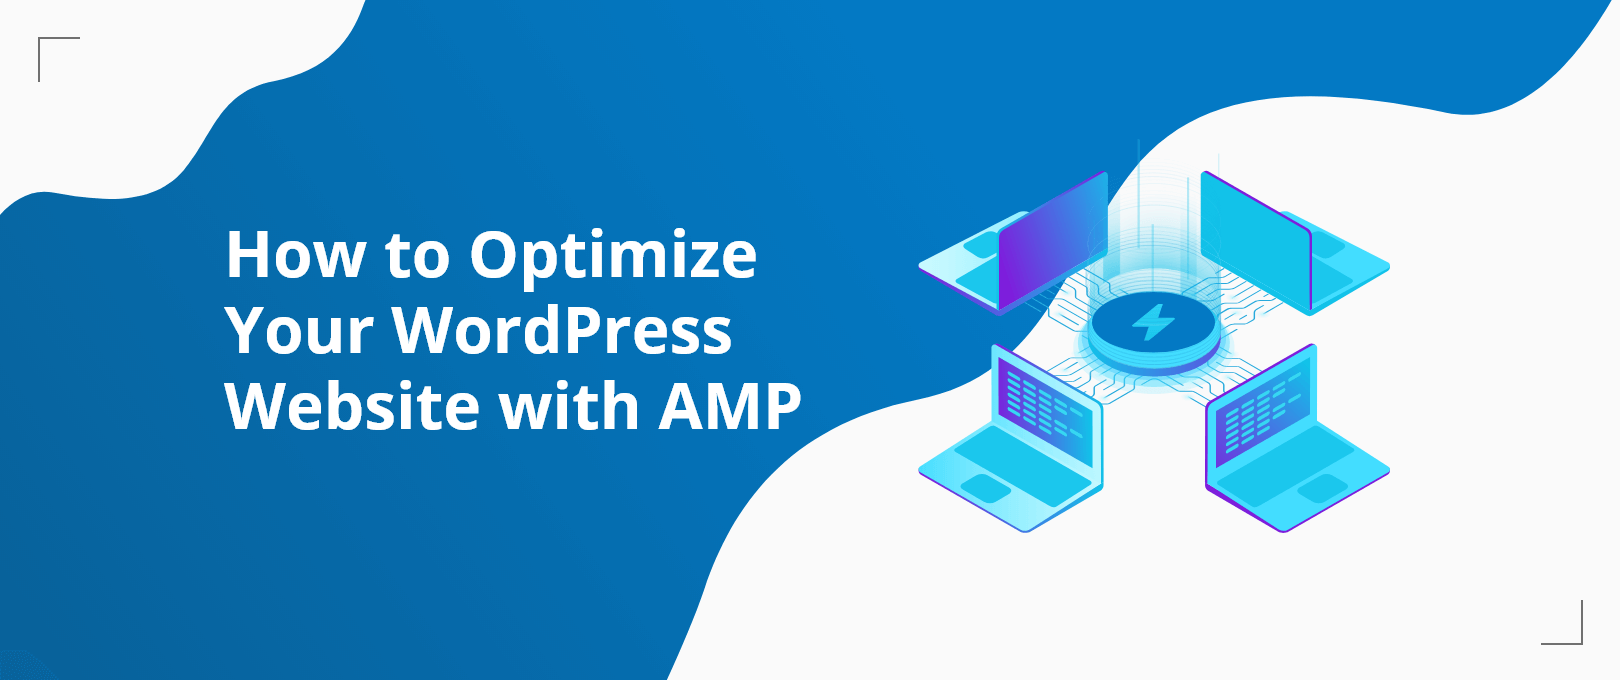 How to Optimize Your WordPress Website with AMP